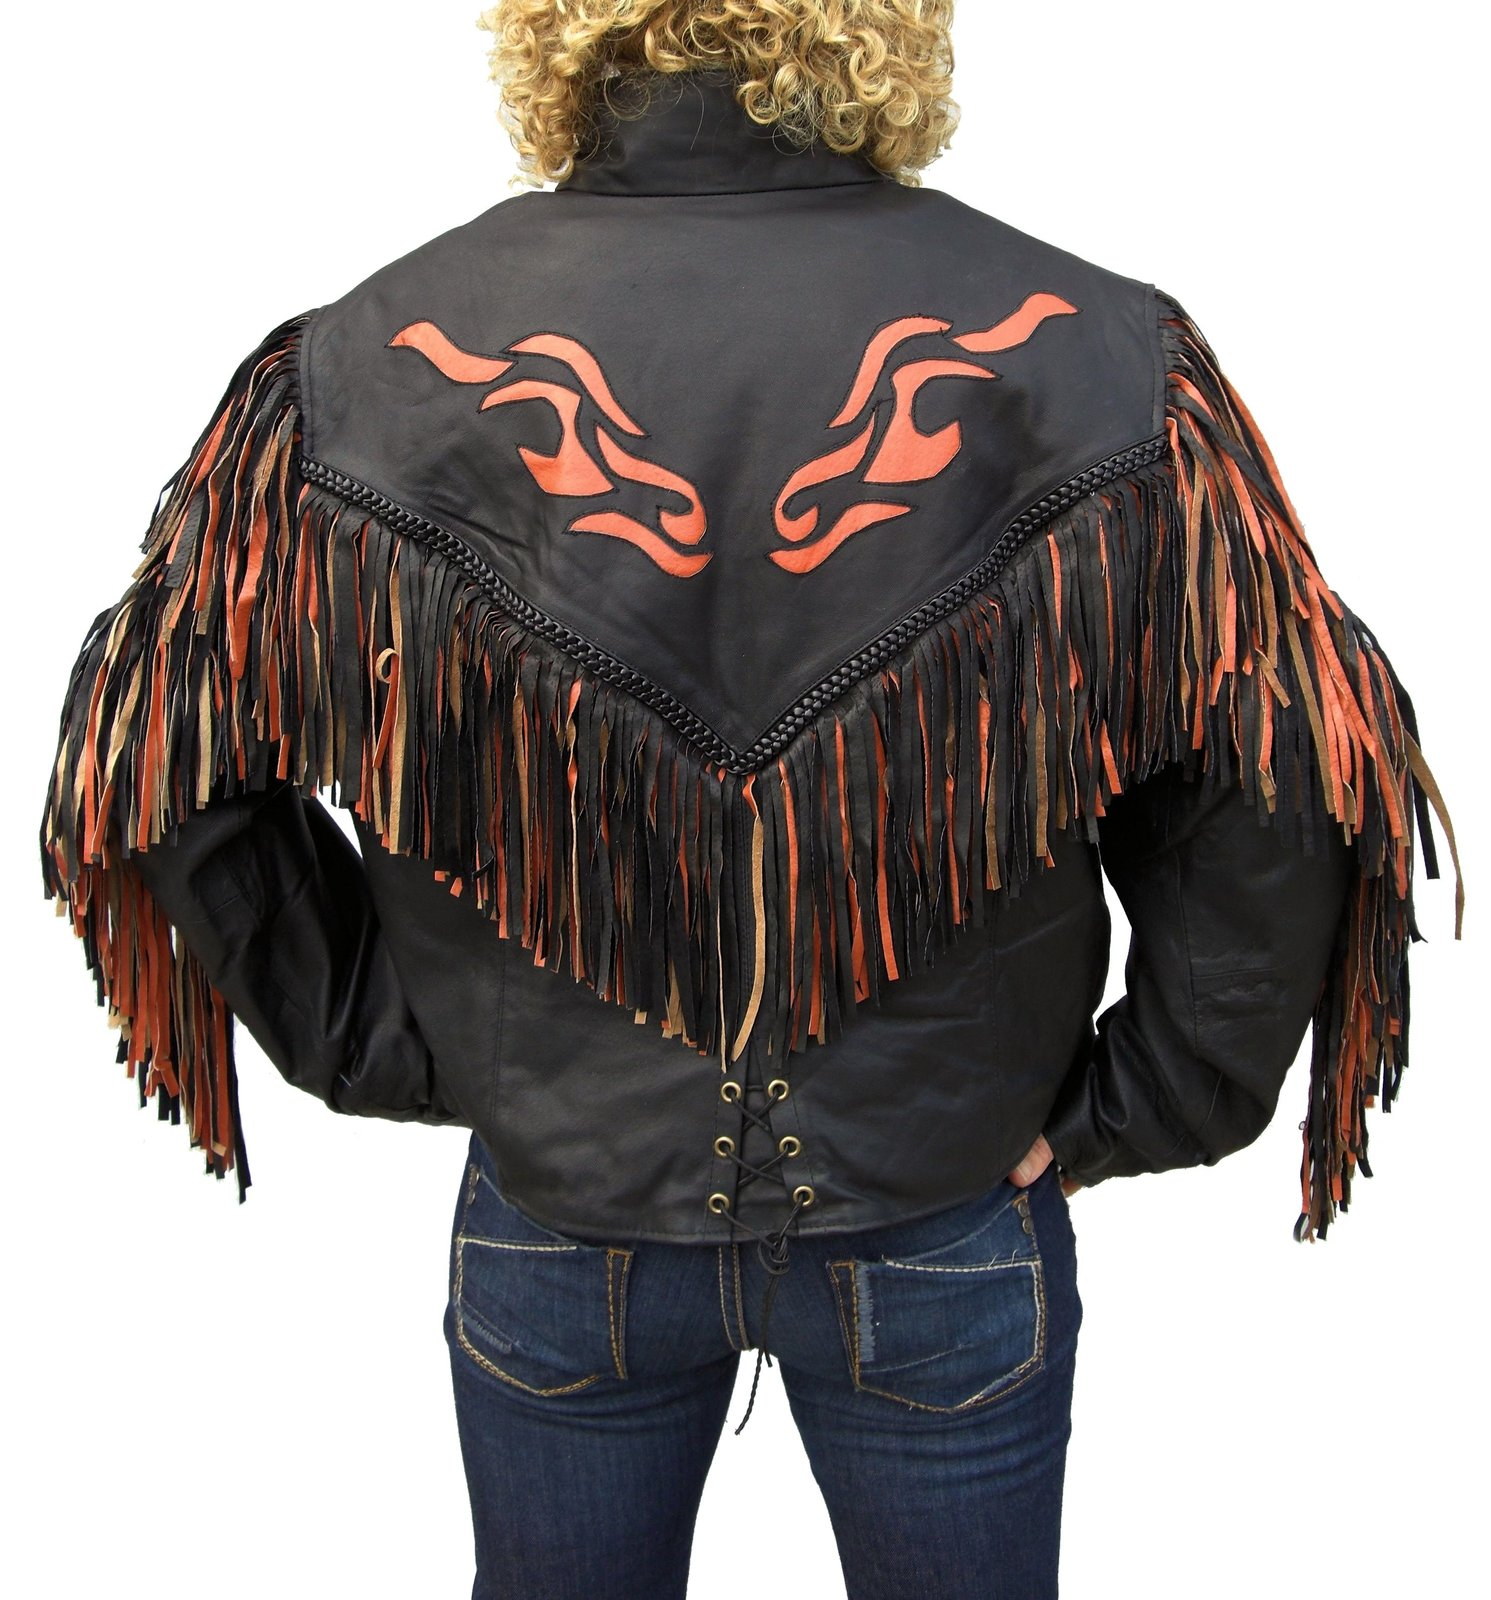 QASTAN Women's Western Black Orange Flame Fringe Leather Jacket WWJ01